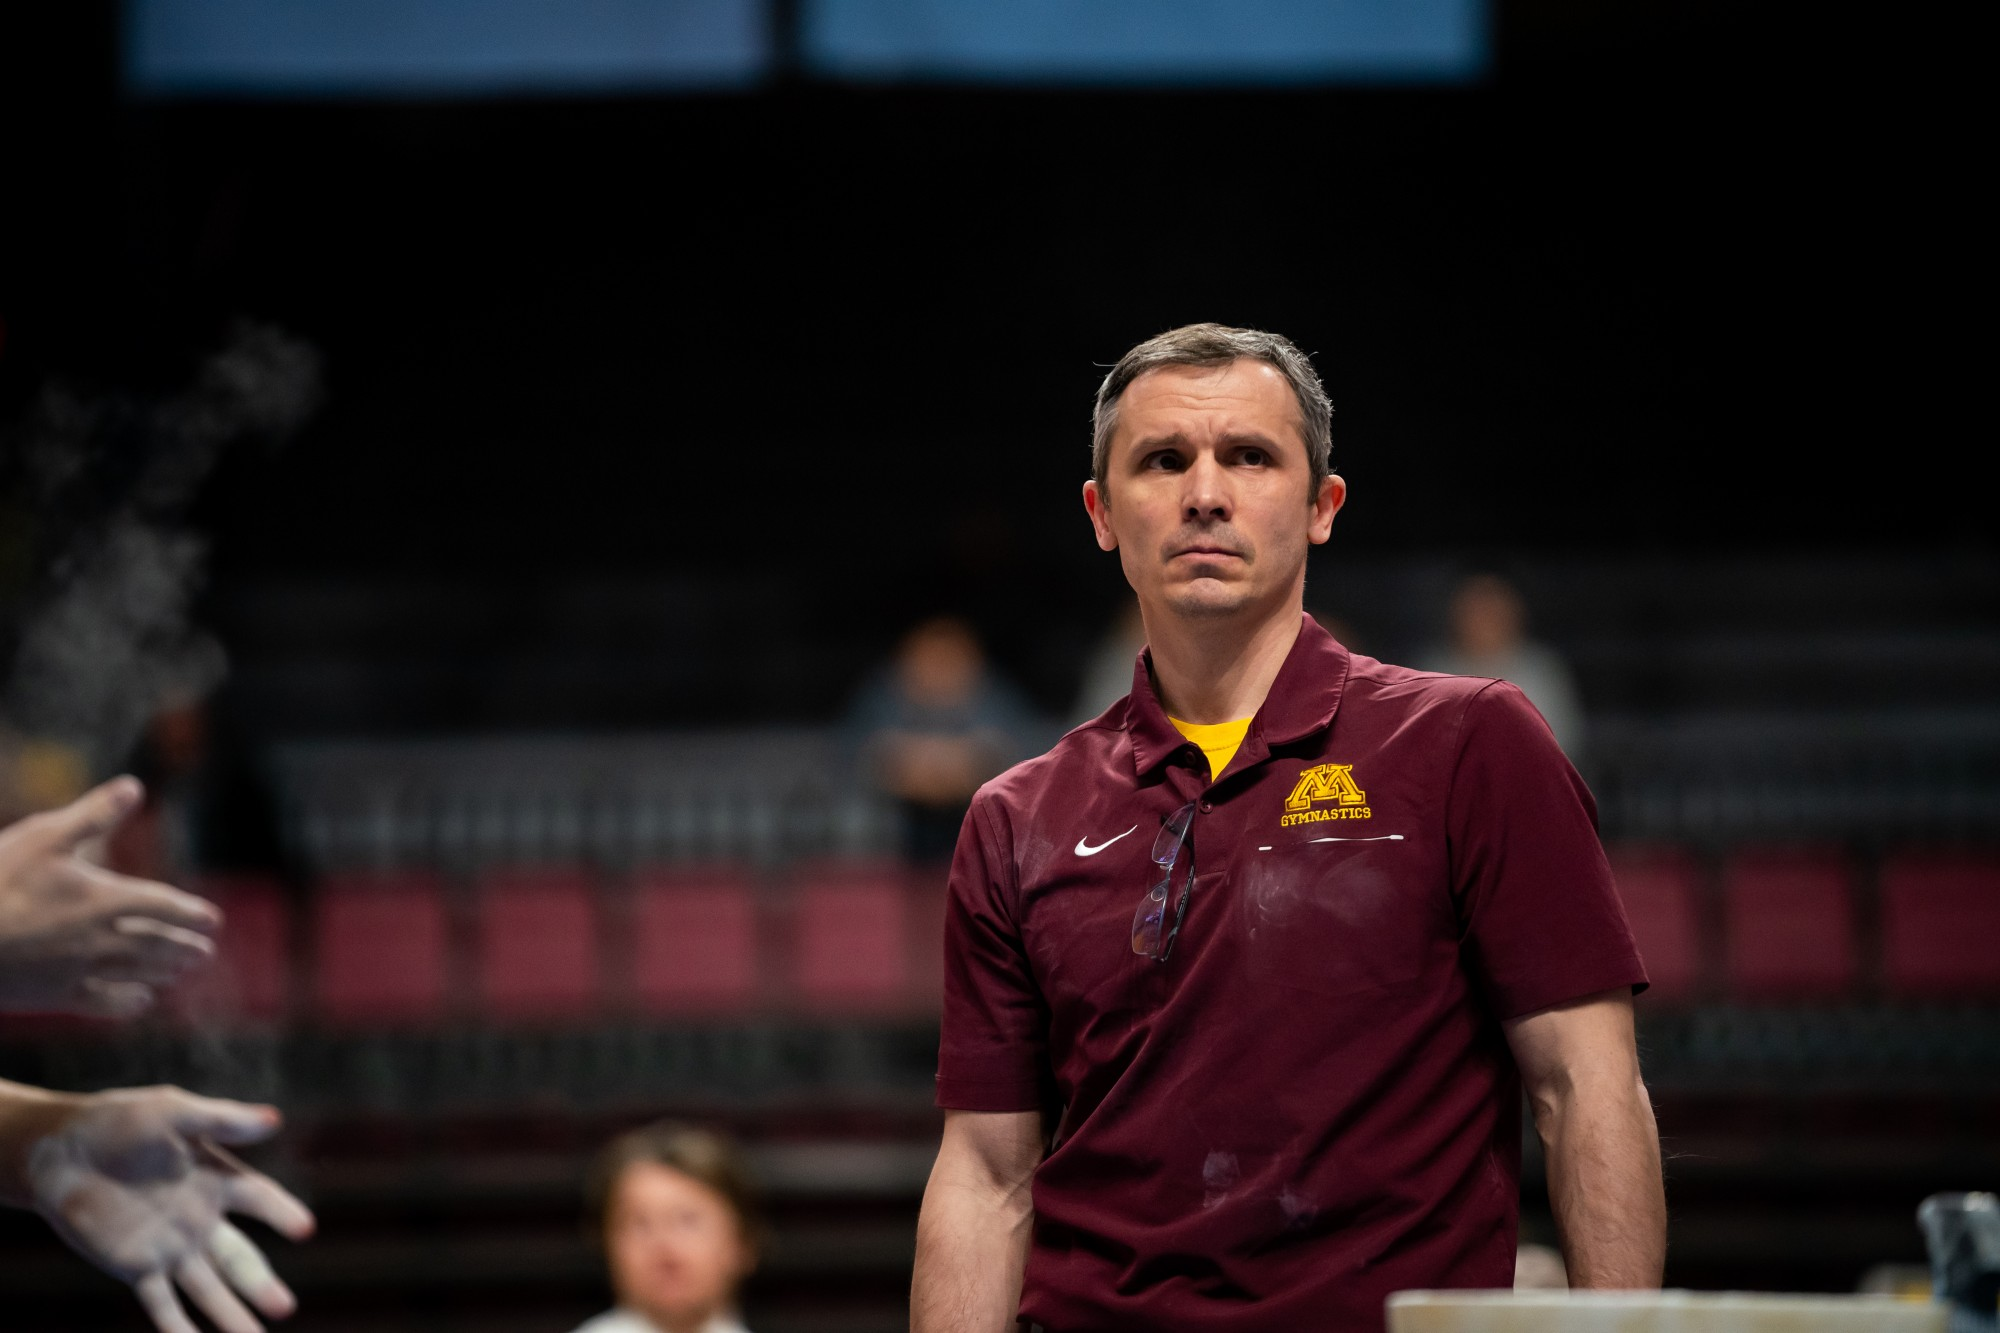 Courtesy of University of Minnesota Athletics.